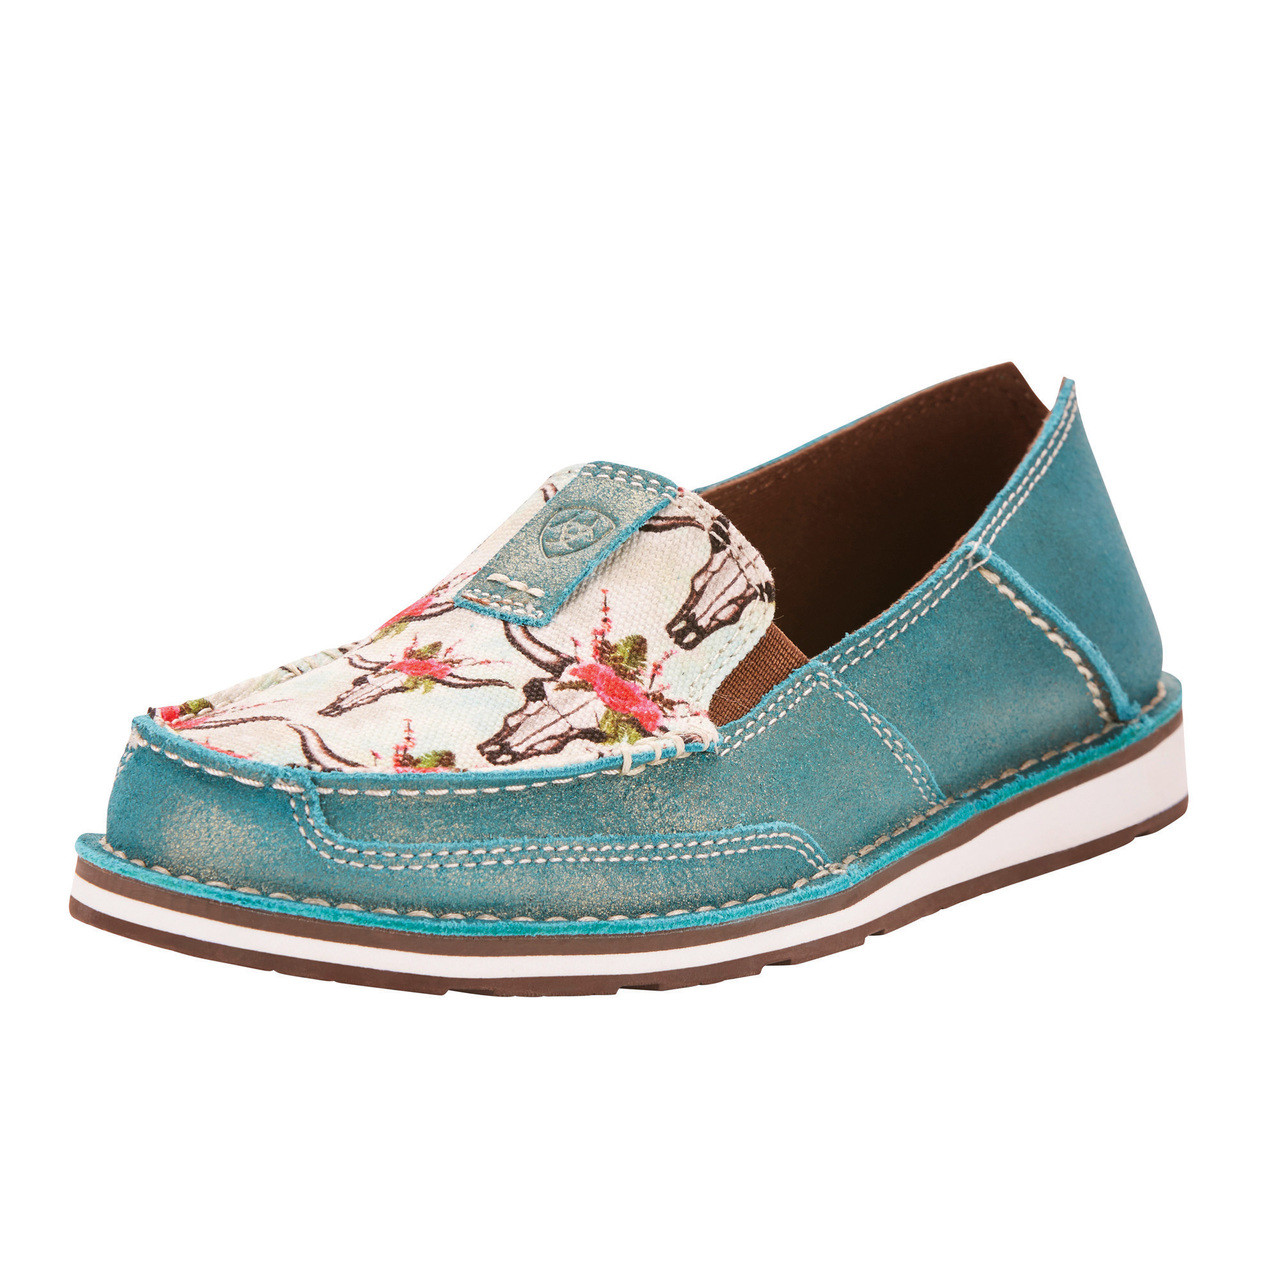 893becb4c19aa Ariat Women s Steers and Roses Cruiser